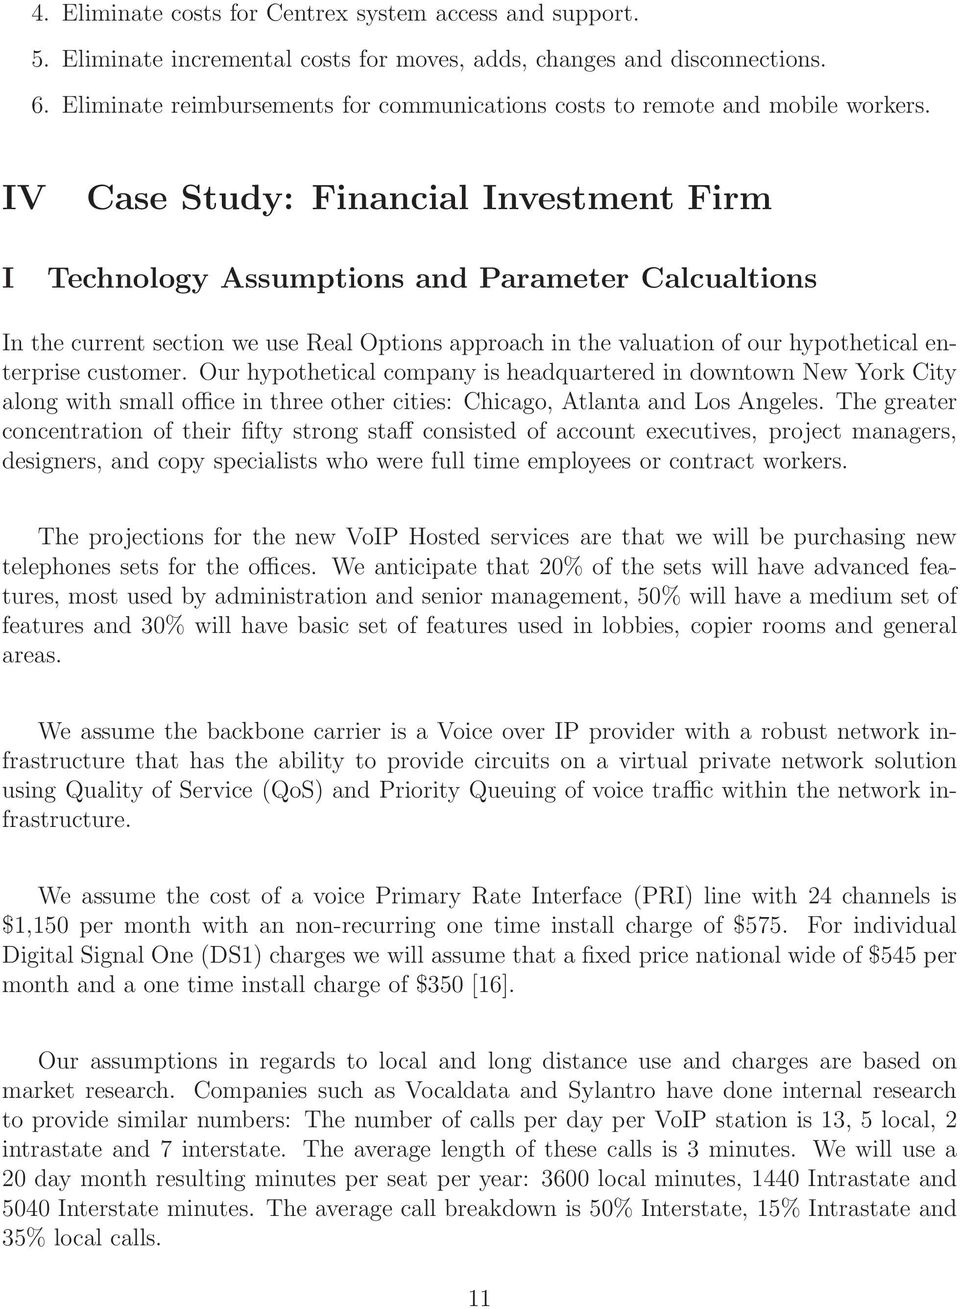 IV Case Study: Financial Investment Firm I Technology Assumptions and Parameter Calcualtions In the current section we use Real Options approach in the valuation of our hypothetical enterprise